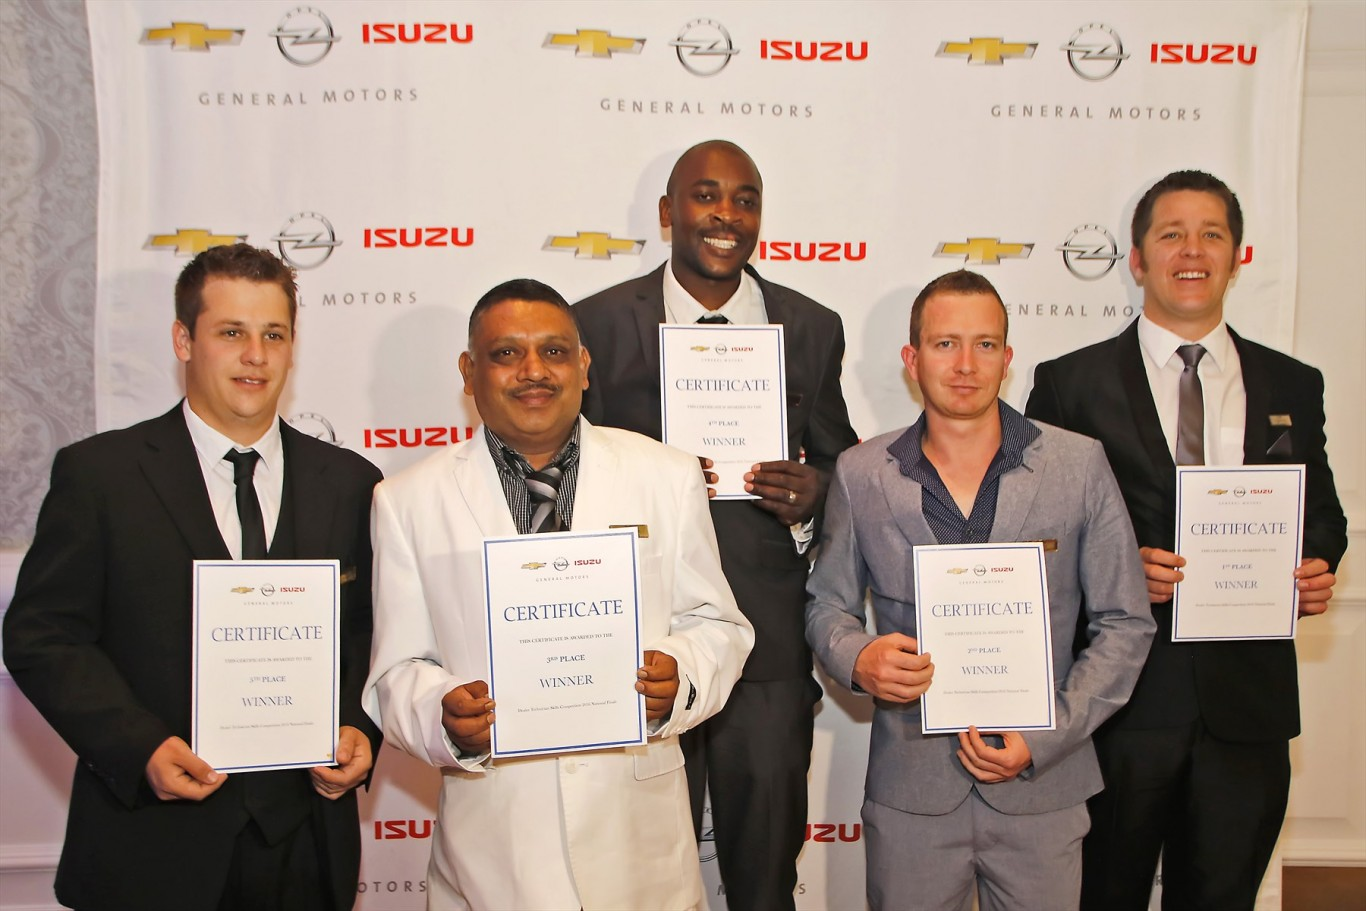 Top Five: The technicians who competed in the final round of the Top Technician Skills Awards are from left: Kieran Vermaak (Edmond Auto), Sujit Munniseker (South Coast Motors), Michael Nyakudya (Imperial GM Germiston), Hendre Hulscher (Reeds N1 City) and Gawie Engelbrecht (Williams Hunt Port Elizabeth)